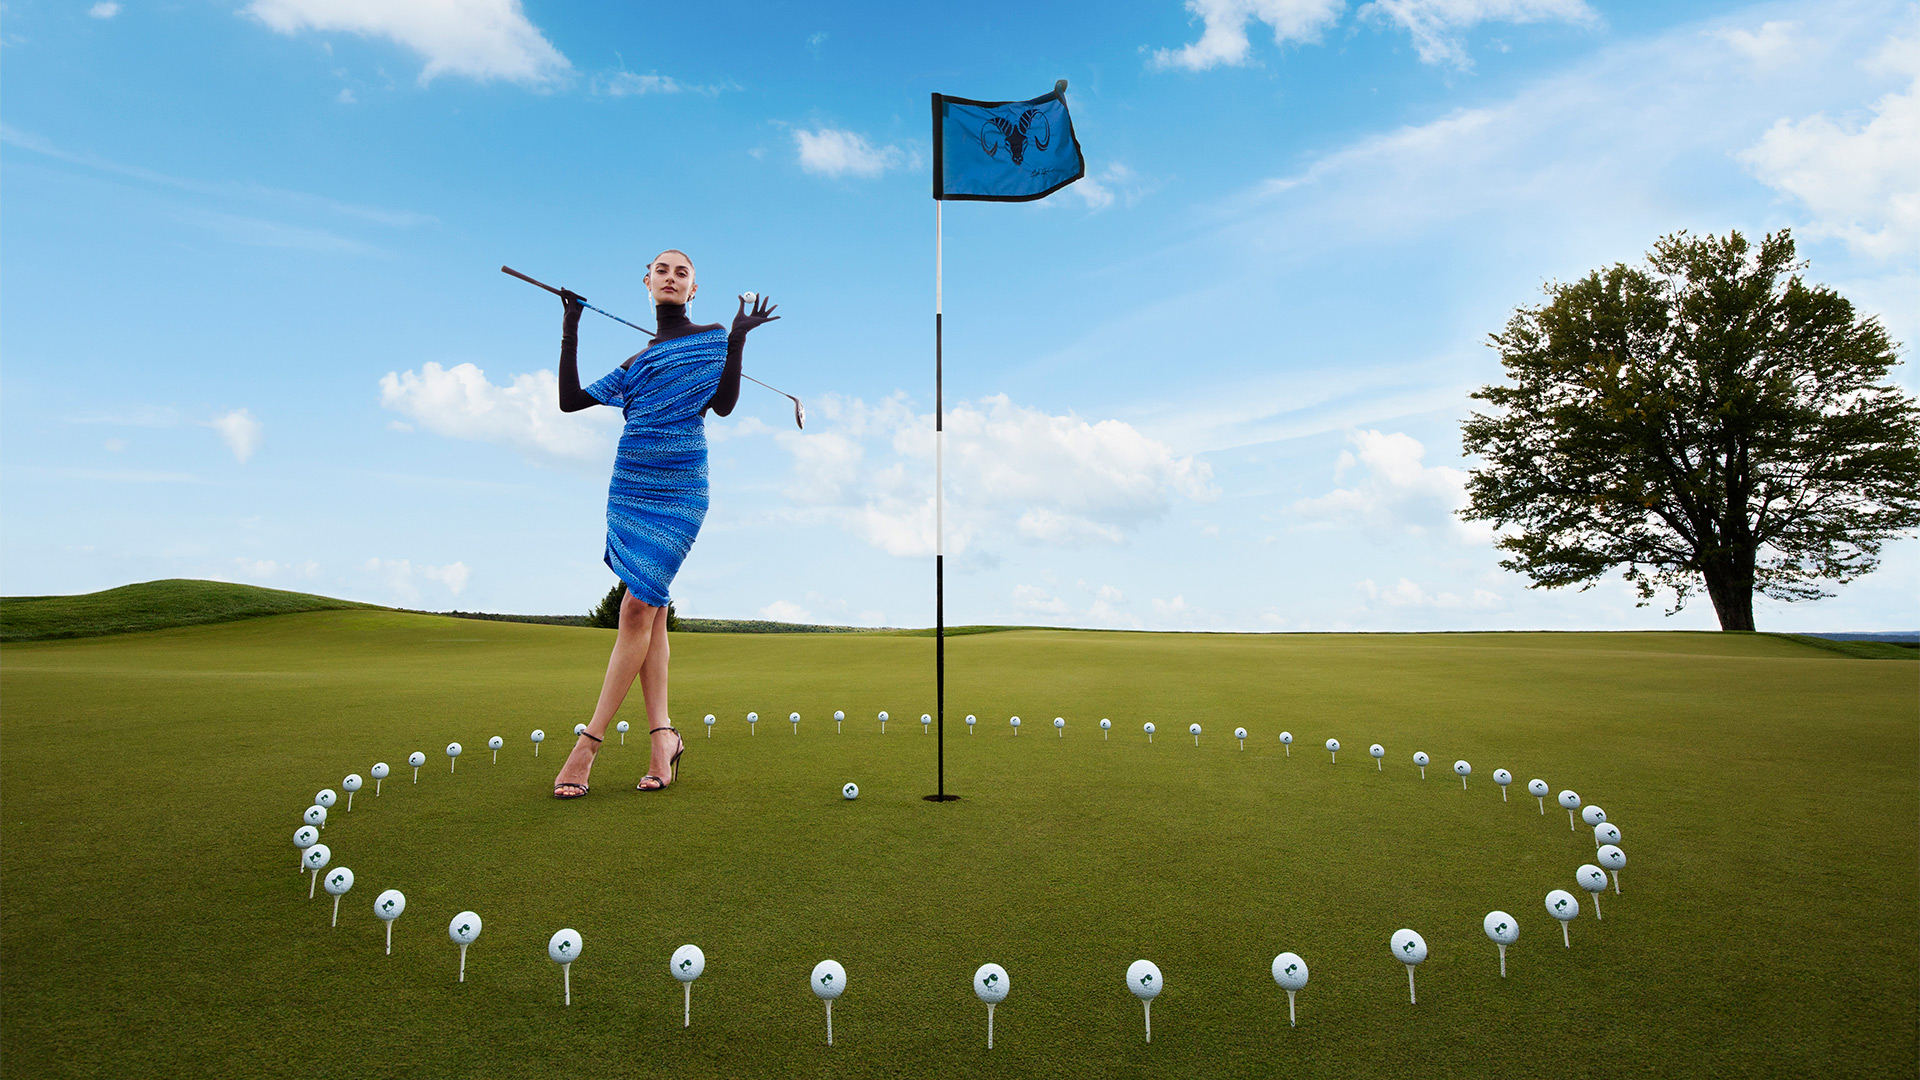 woman posing on a golf course with a flag in the middle and golf ball circle surrounding her